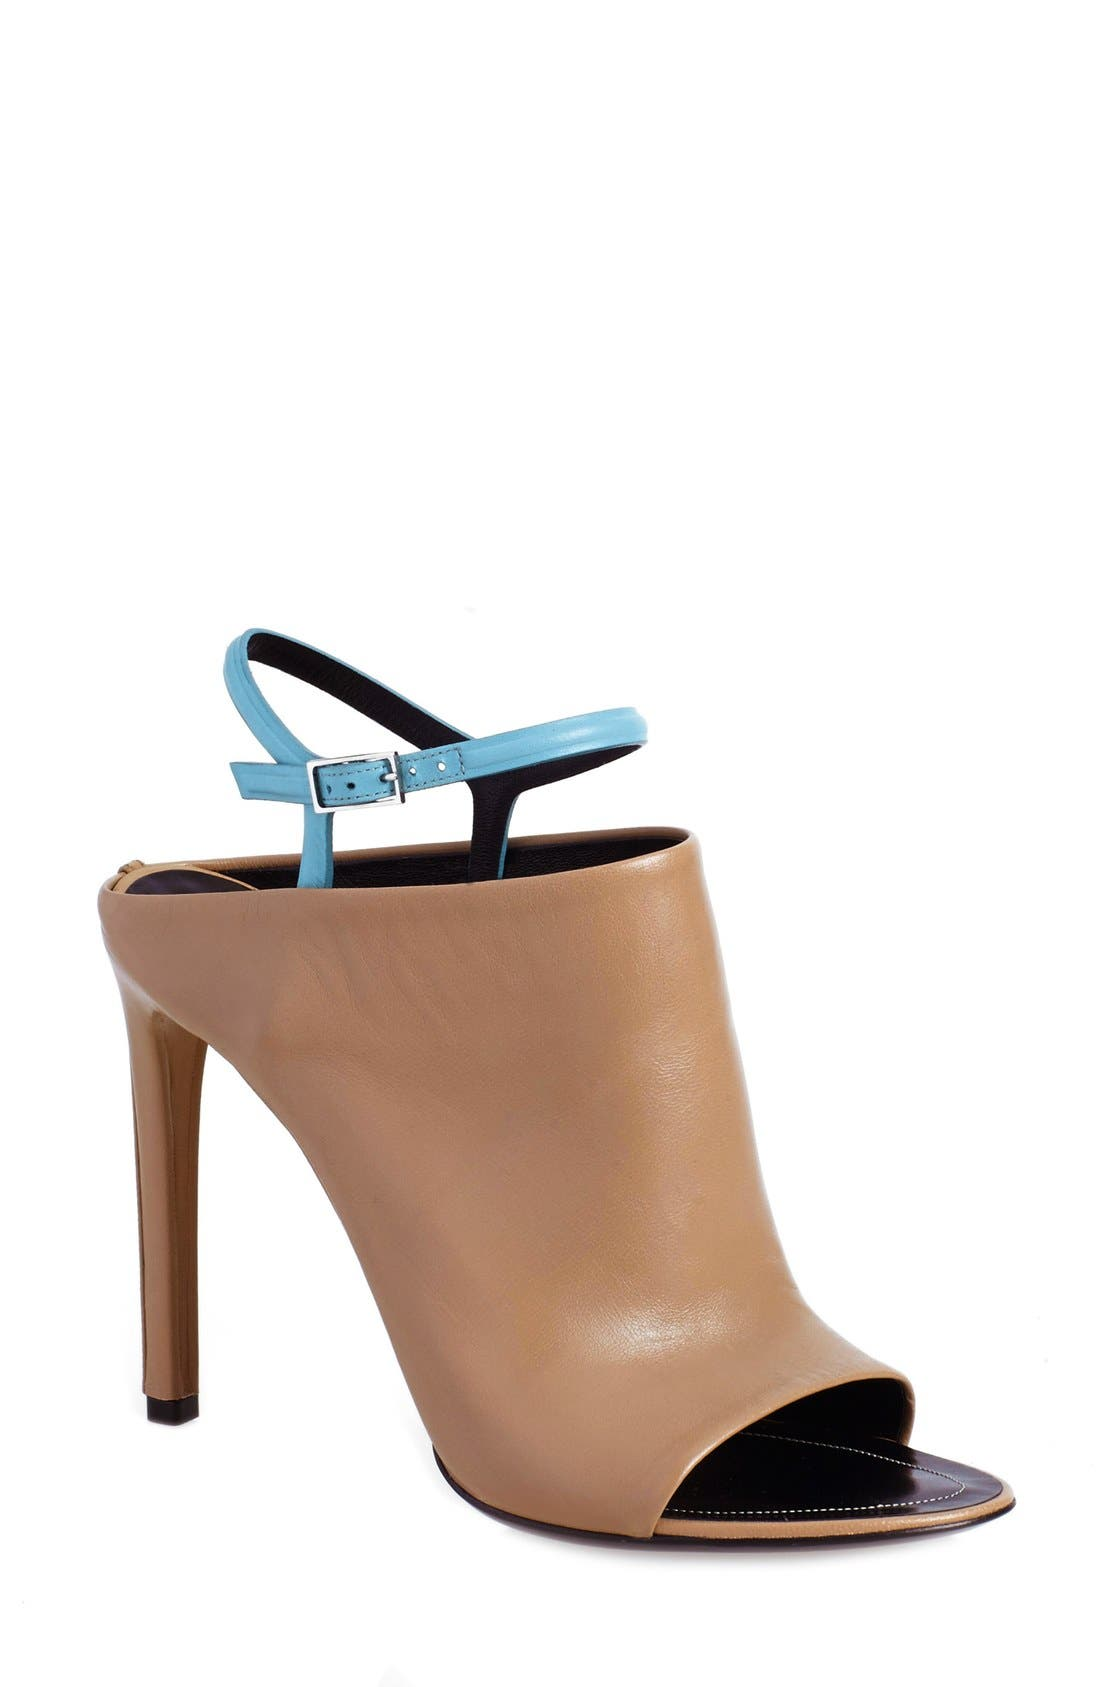 Main Image - Balenciaga 'Glove' Bicolor Leather Open Toe Sandal (Women)